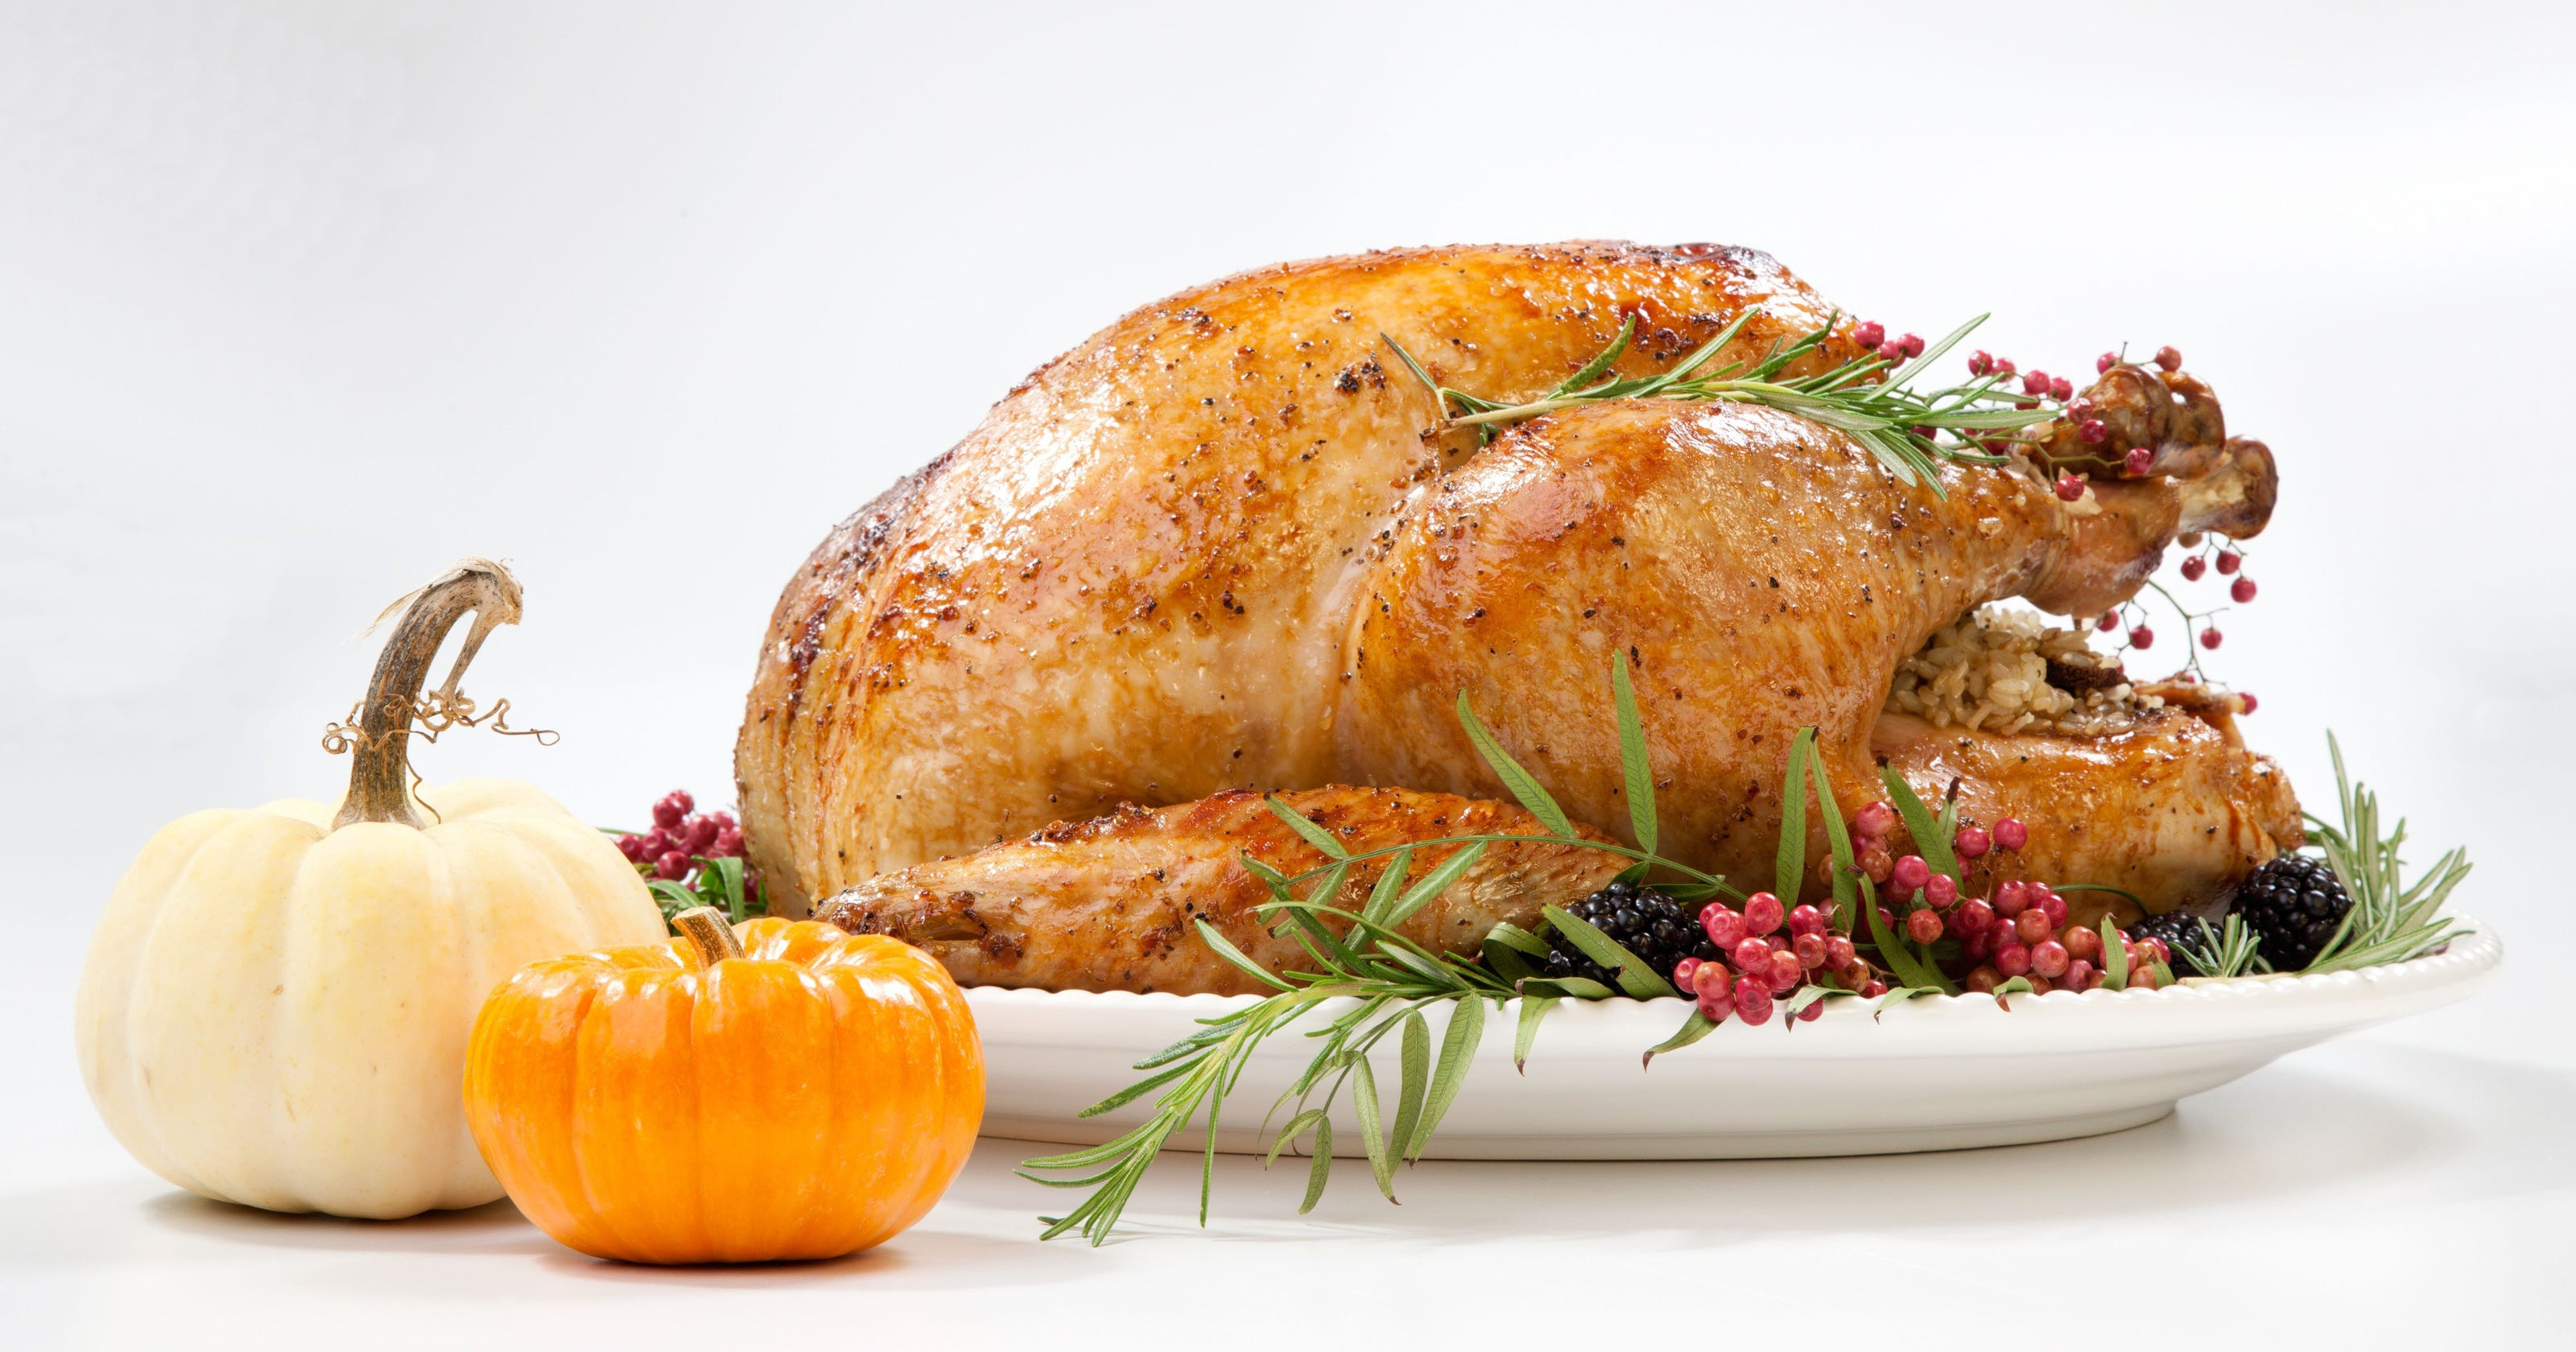 Best Turkey Brands To Buy For Thanksgiving  Turkey salmonella outbreak Why USDA isn t release brand names